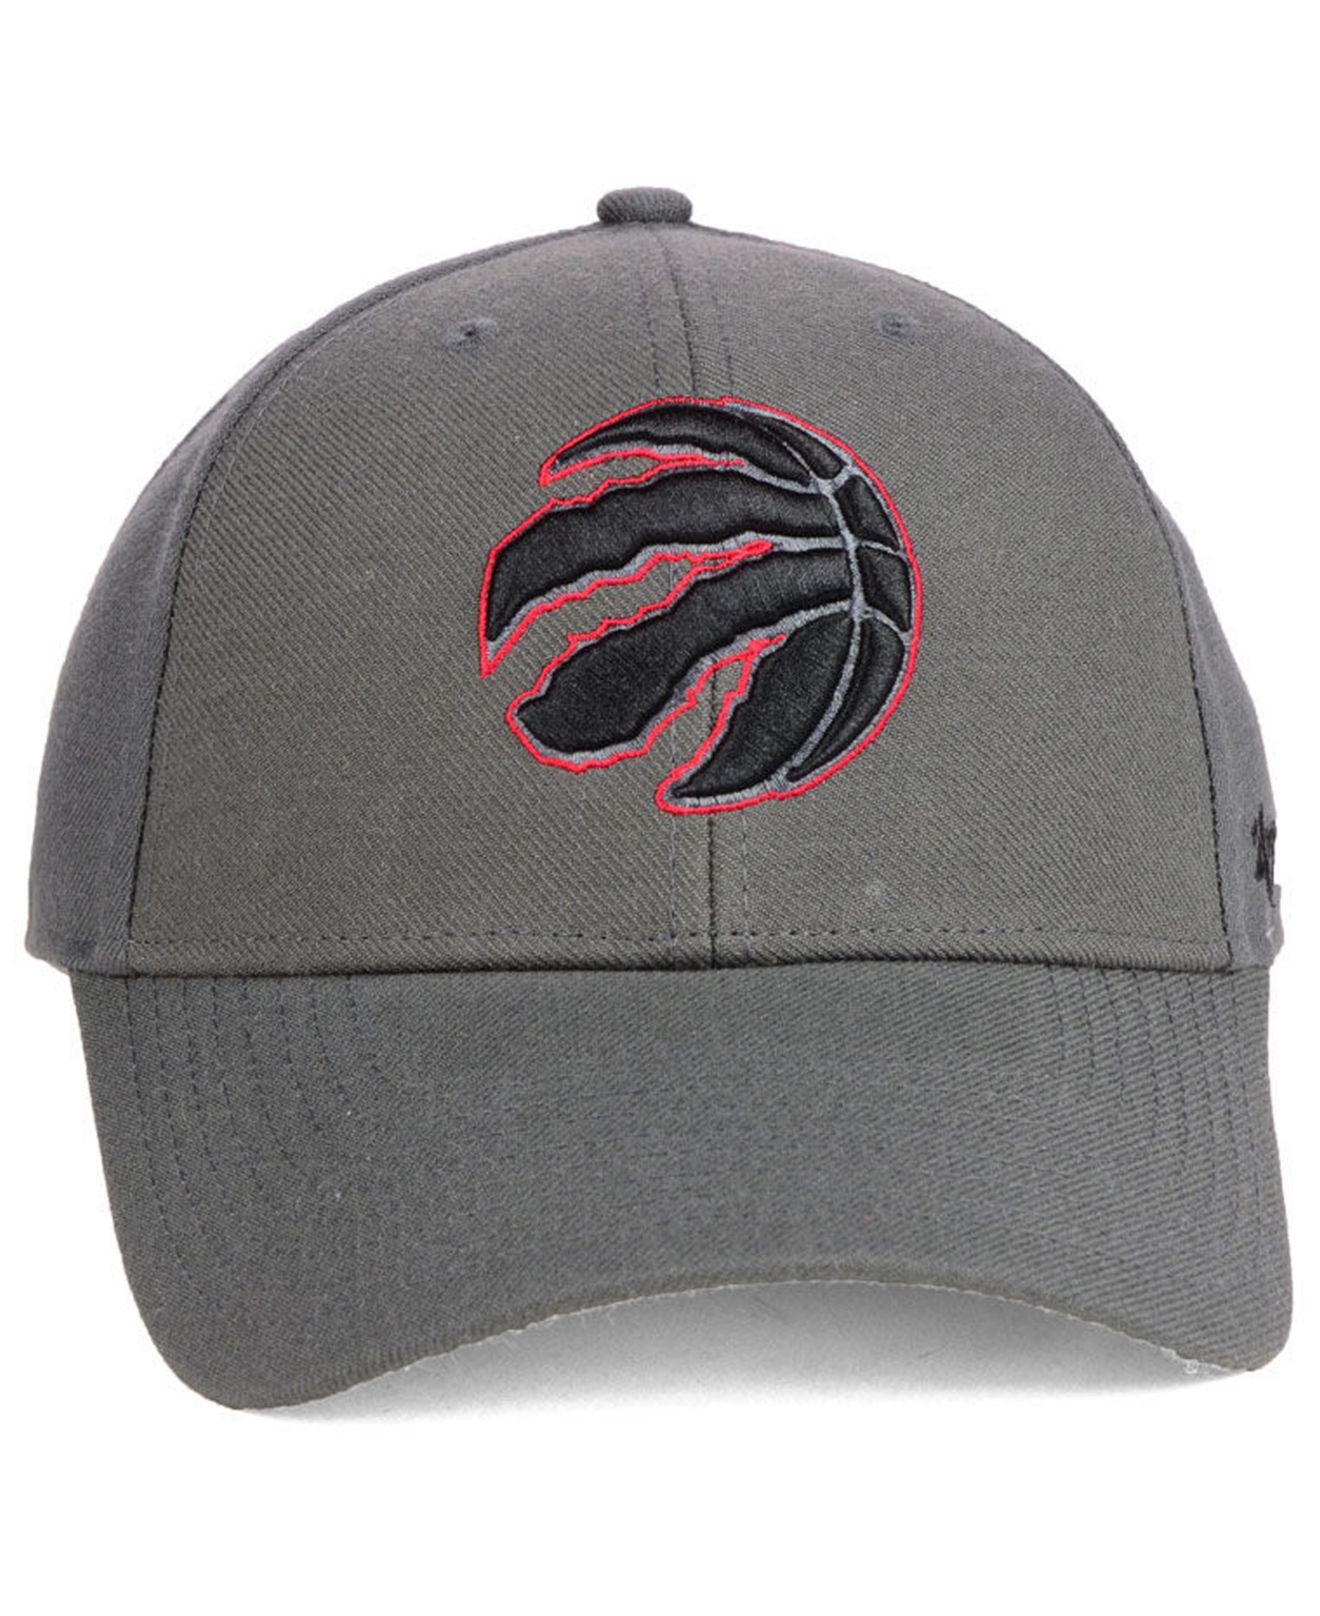 2a531653045 clearance lyst 47 brand toronto raptors charcoal pop mvp cap in gray for  men 1dbd0 45281